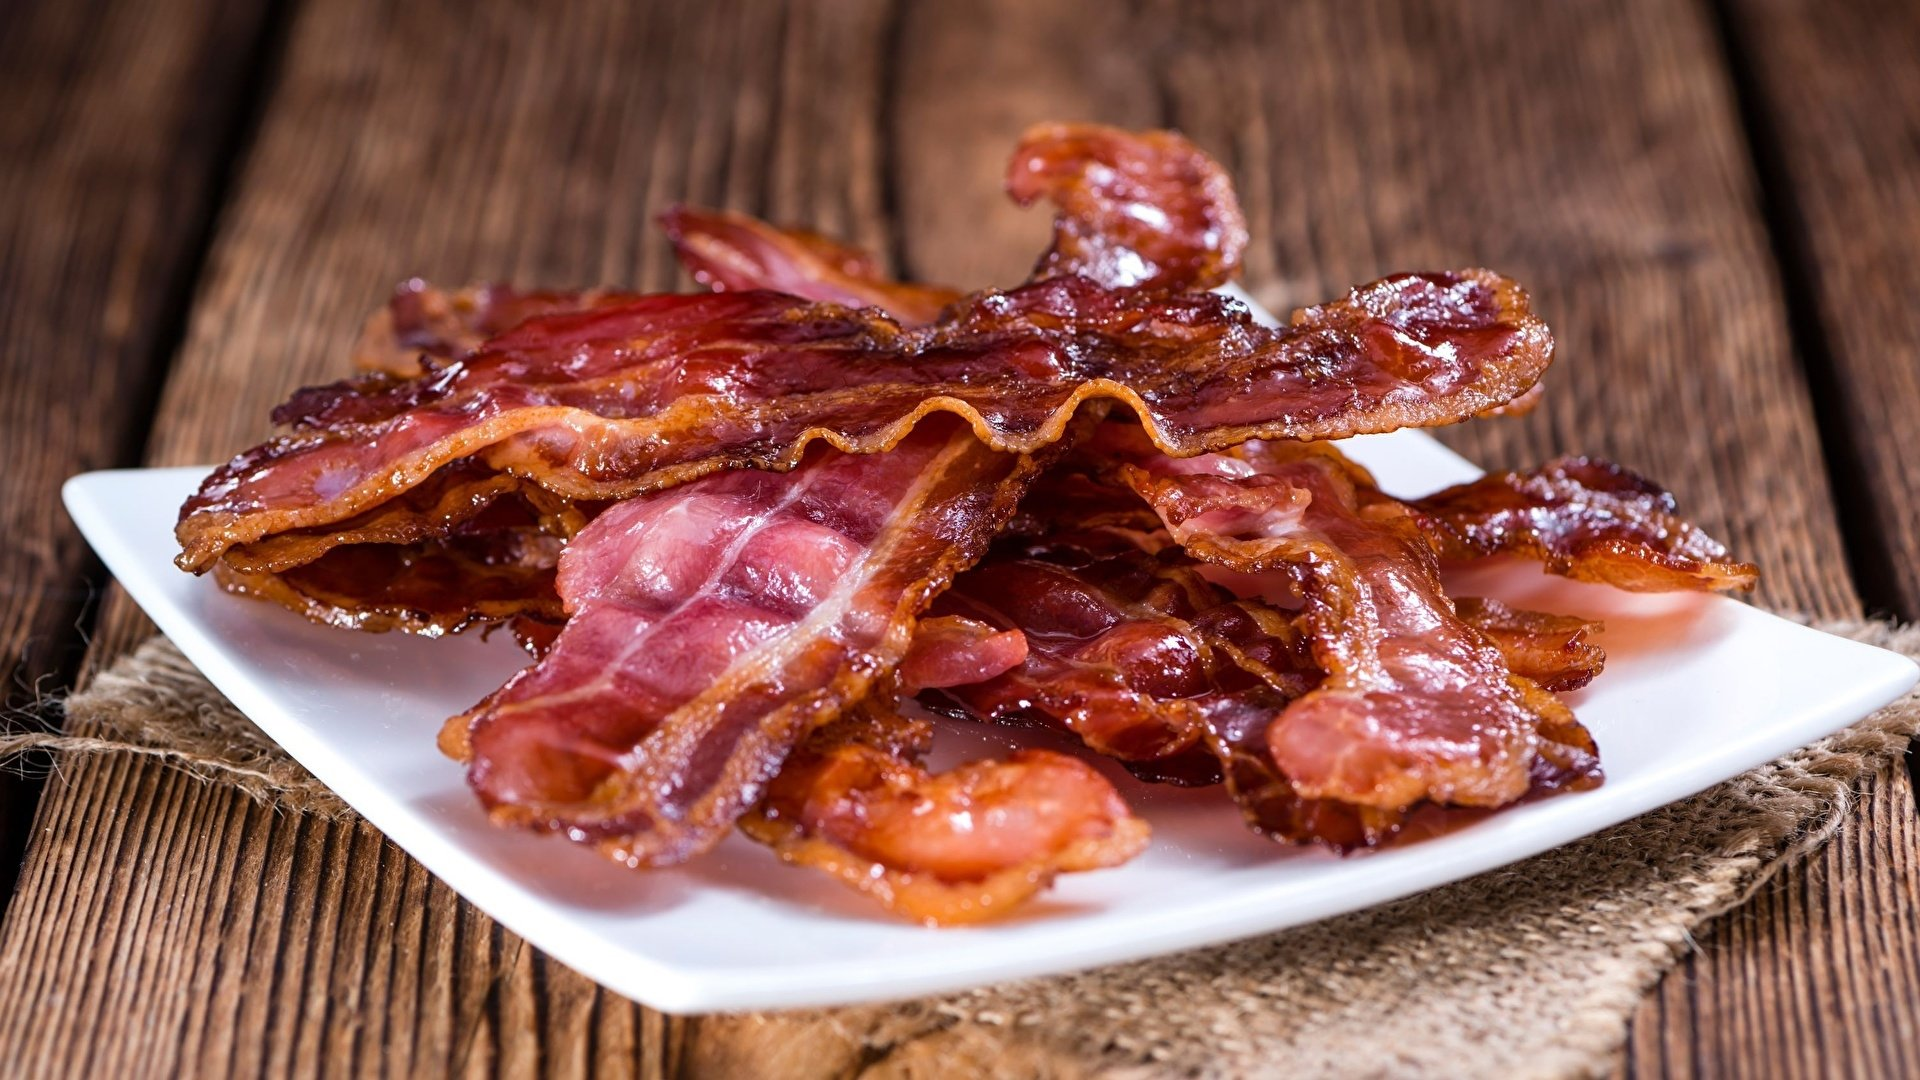 Bacon Wallpaper 1920x1080